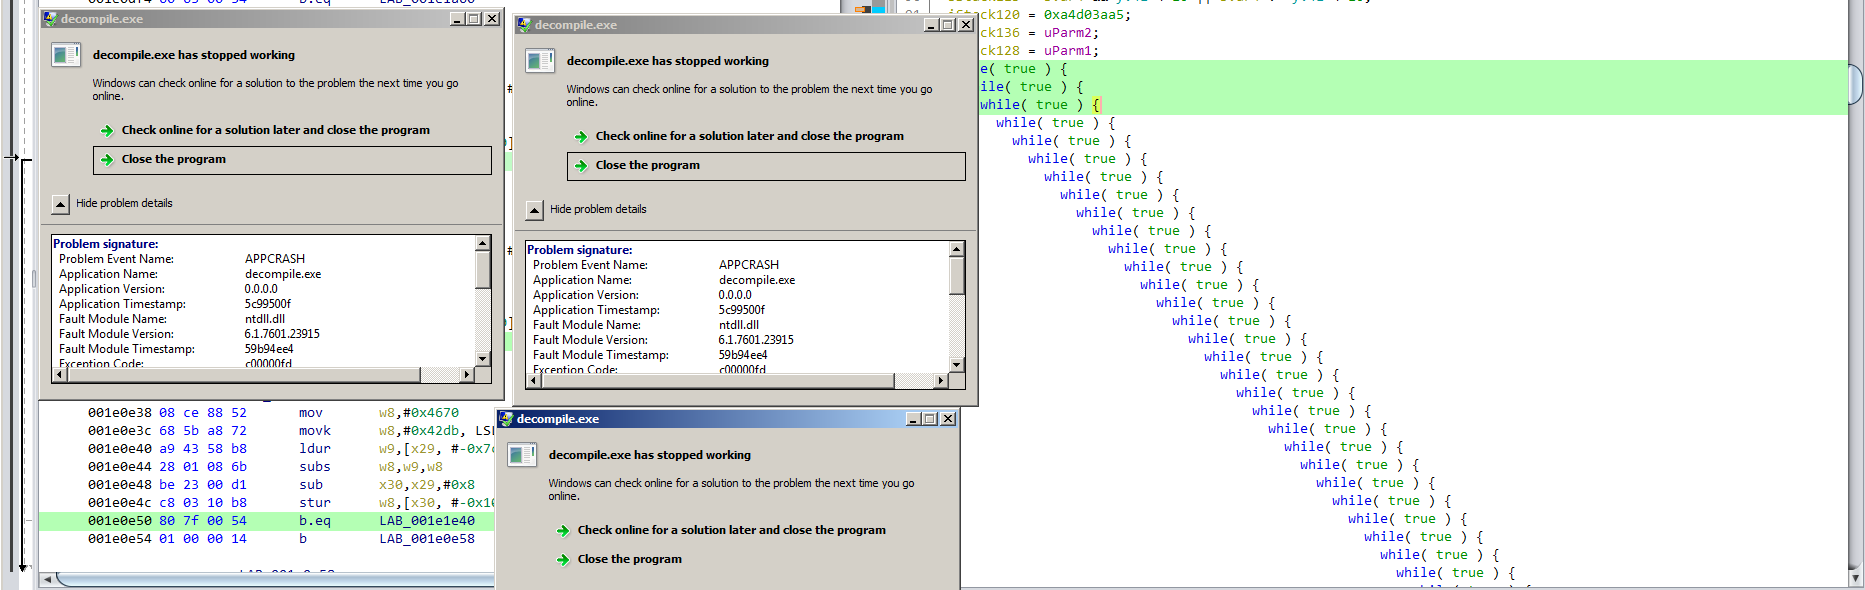 Ghidra decompiler crashes on OLLVM obfuscated samples